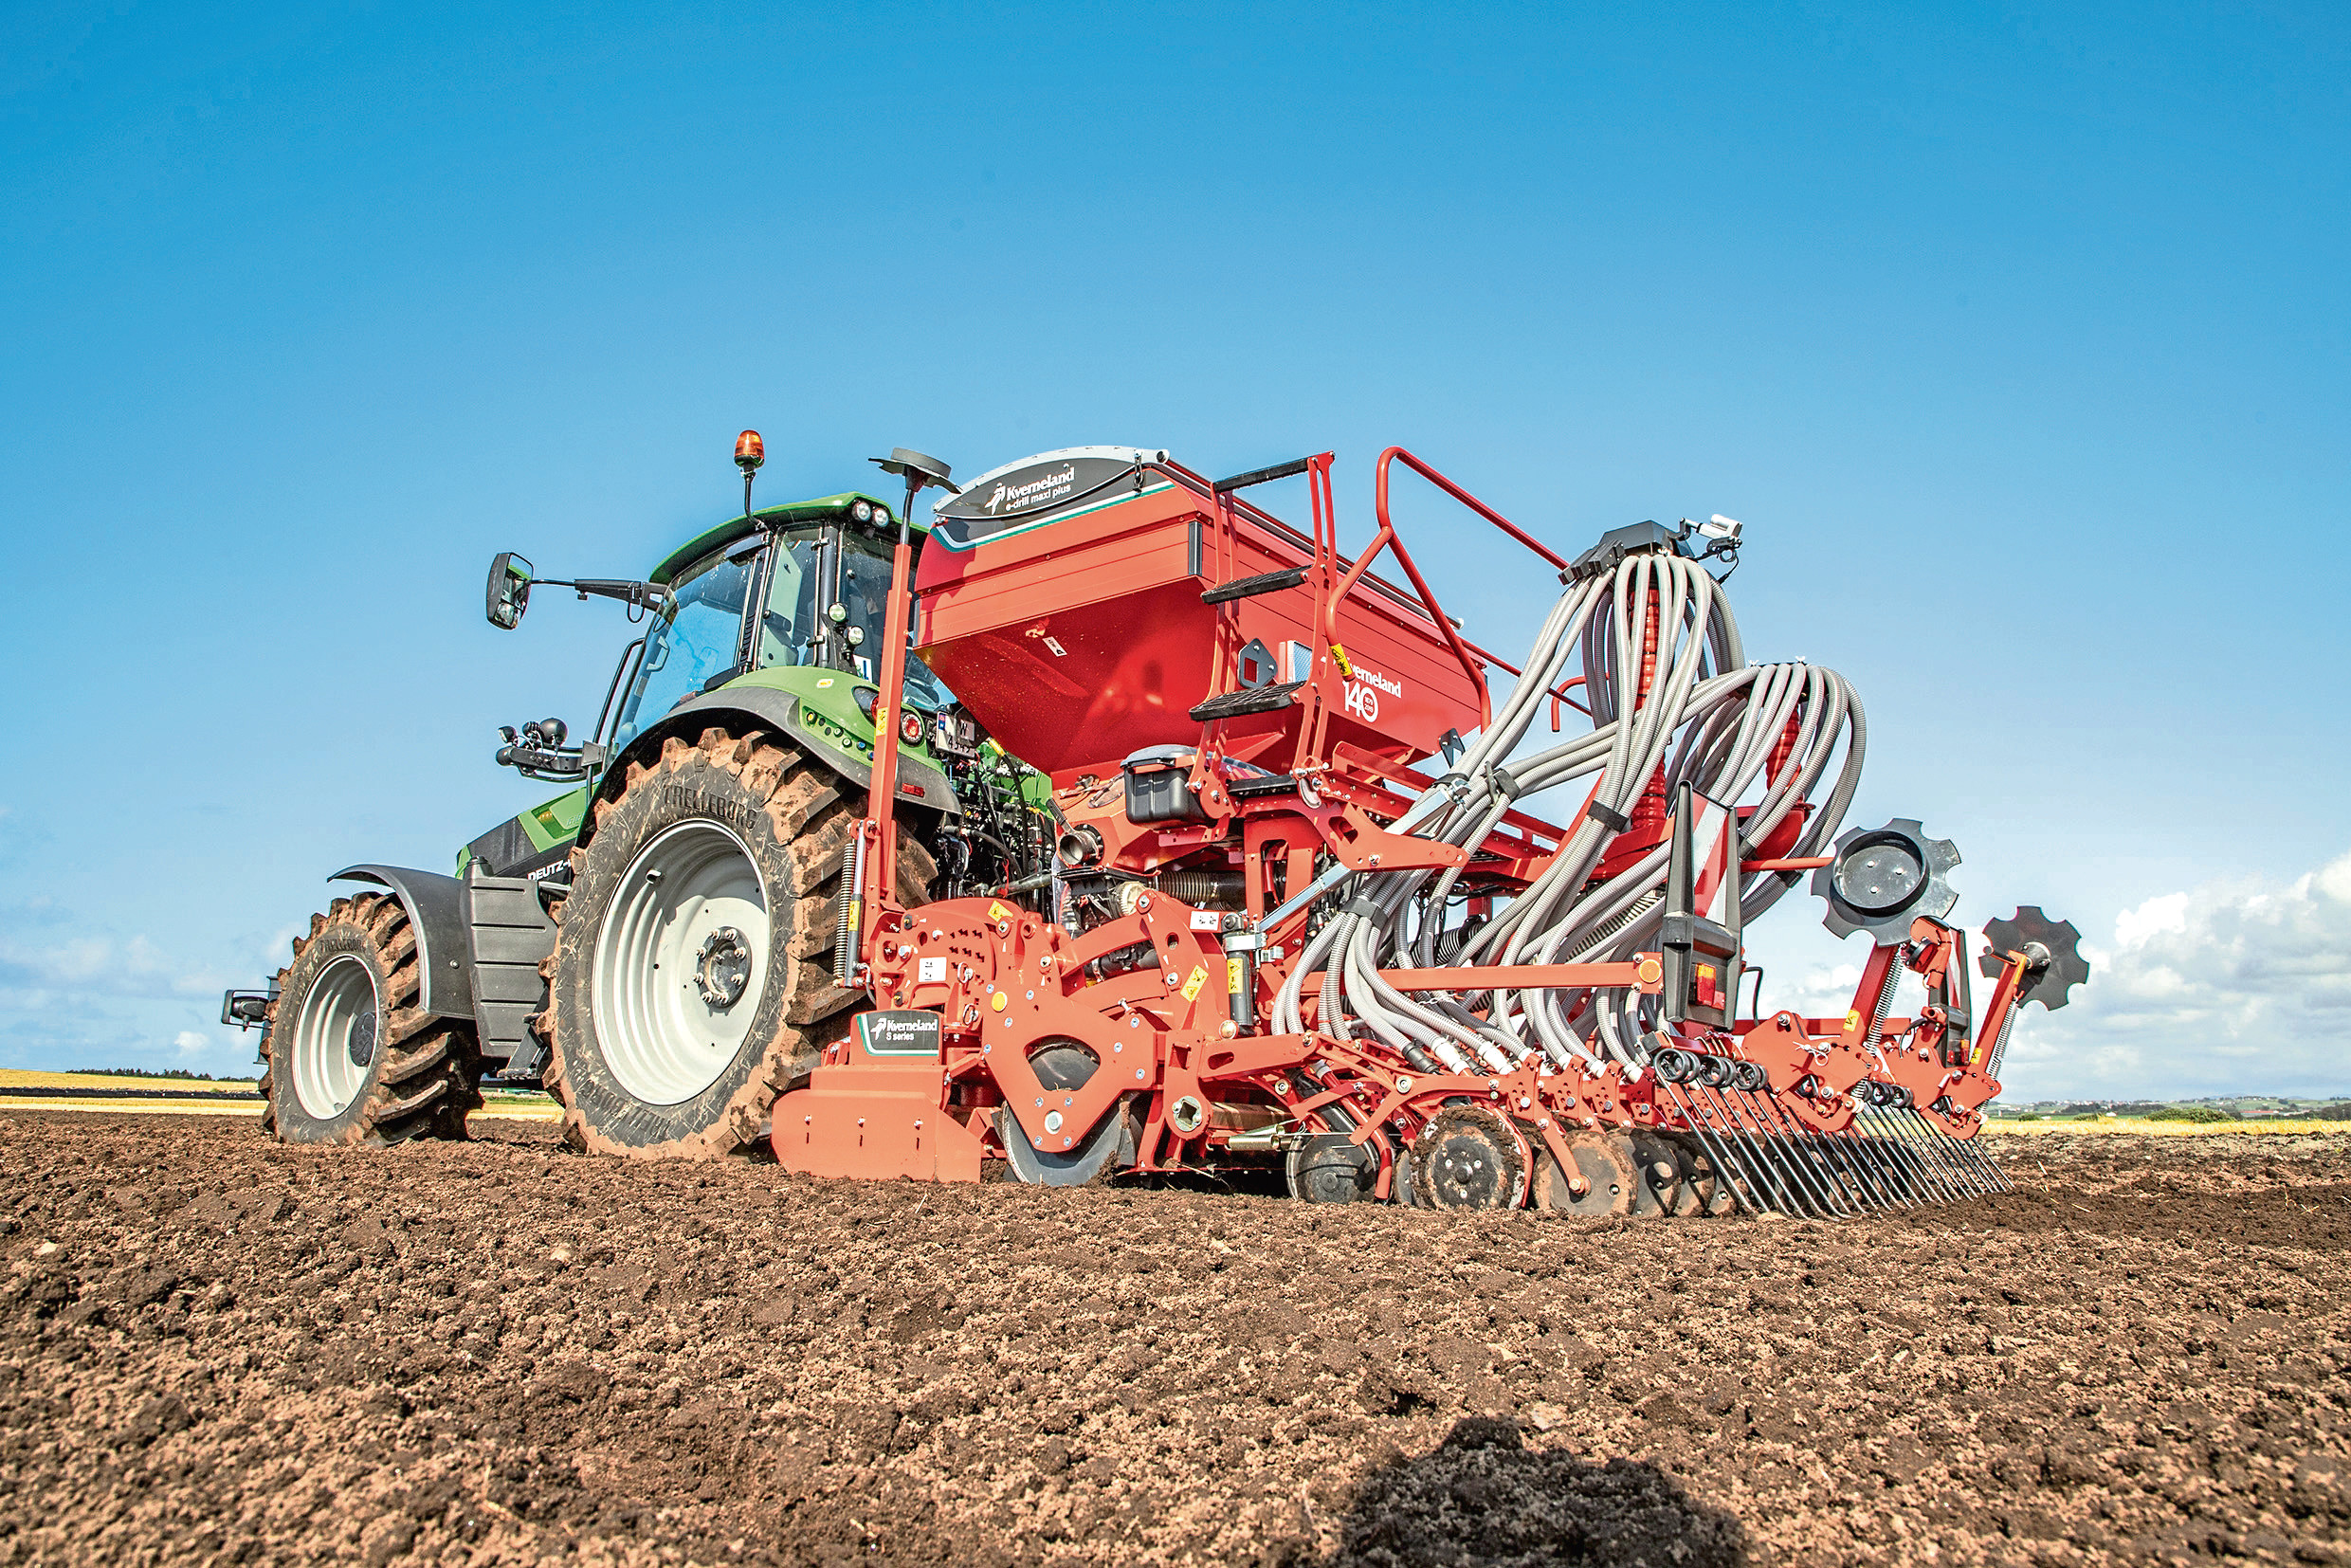 The Plus version of Kverneland's e-drill Maxi piggy-back seed drill has a hopper that can be 60:40 or 70:30 for placing fertiliser, slug pellets or a companion crop.